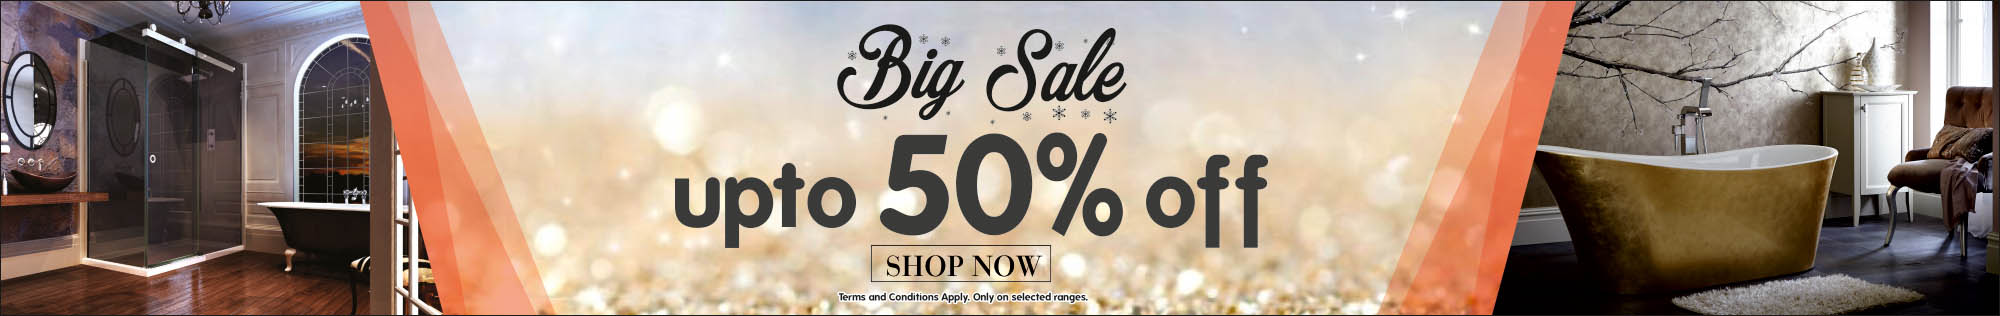 Big February Sale! - Up to 50% off - Shop now. Terms and conditions apply. Only on selected ranges.